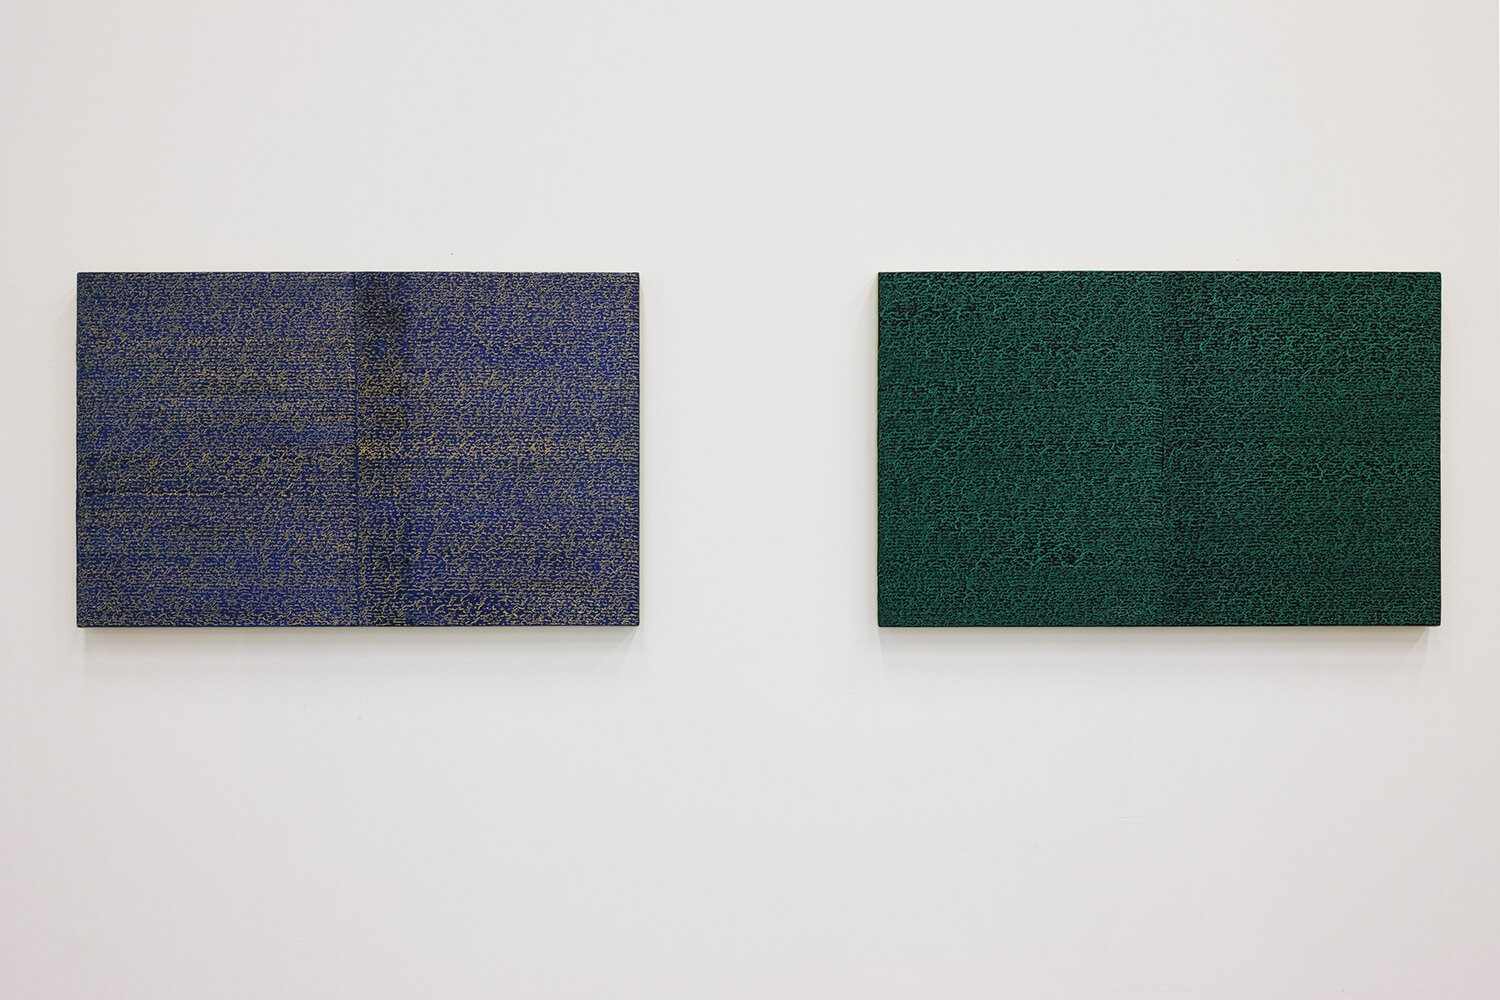 'Open Book yellow-blue'  (left) &  'Open Book green-green' (right)<br>Oil and Amber on canvas over panel, 37 x 60 cm, 2008 each